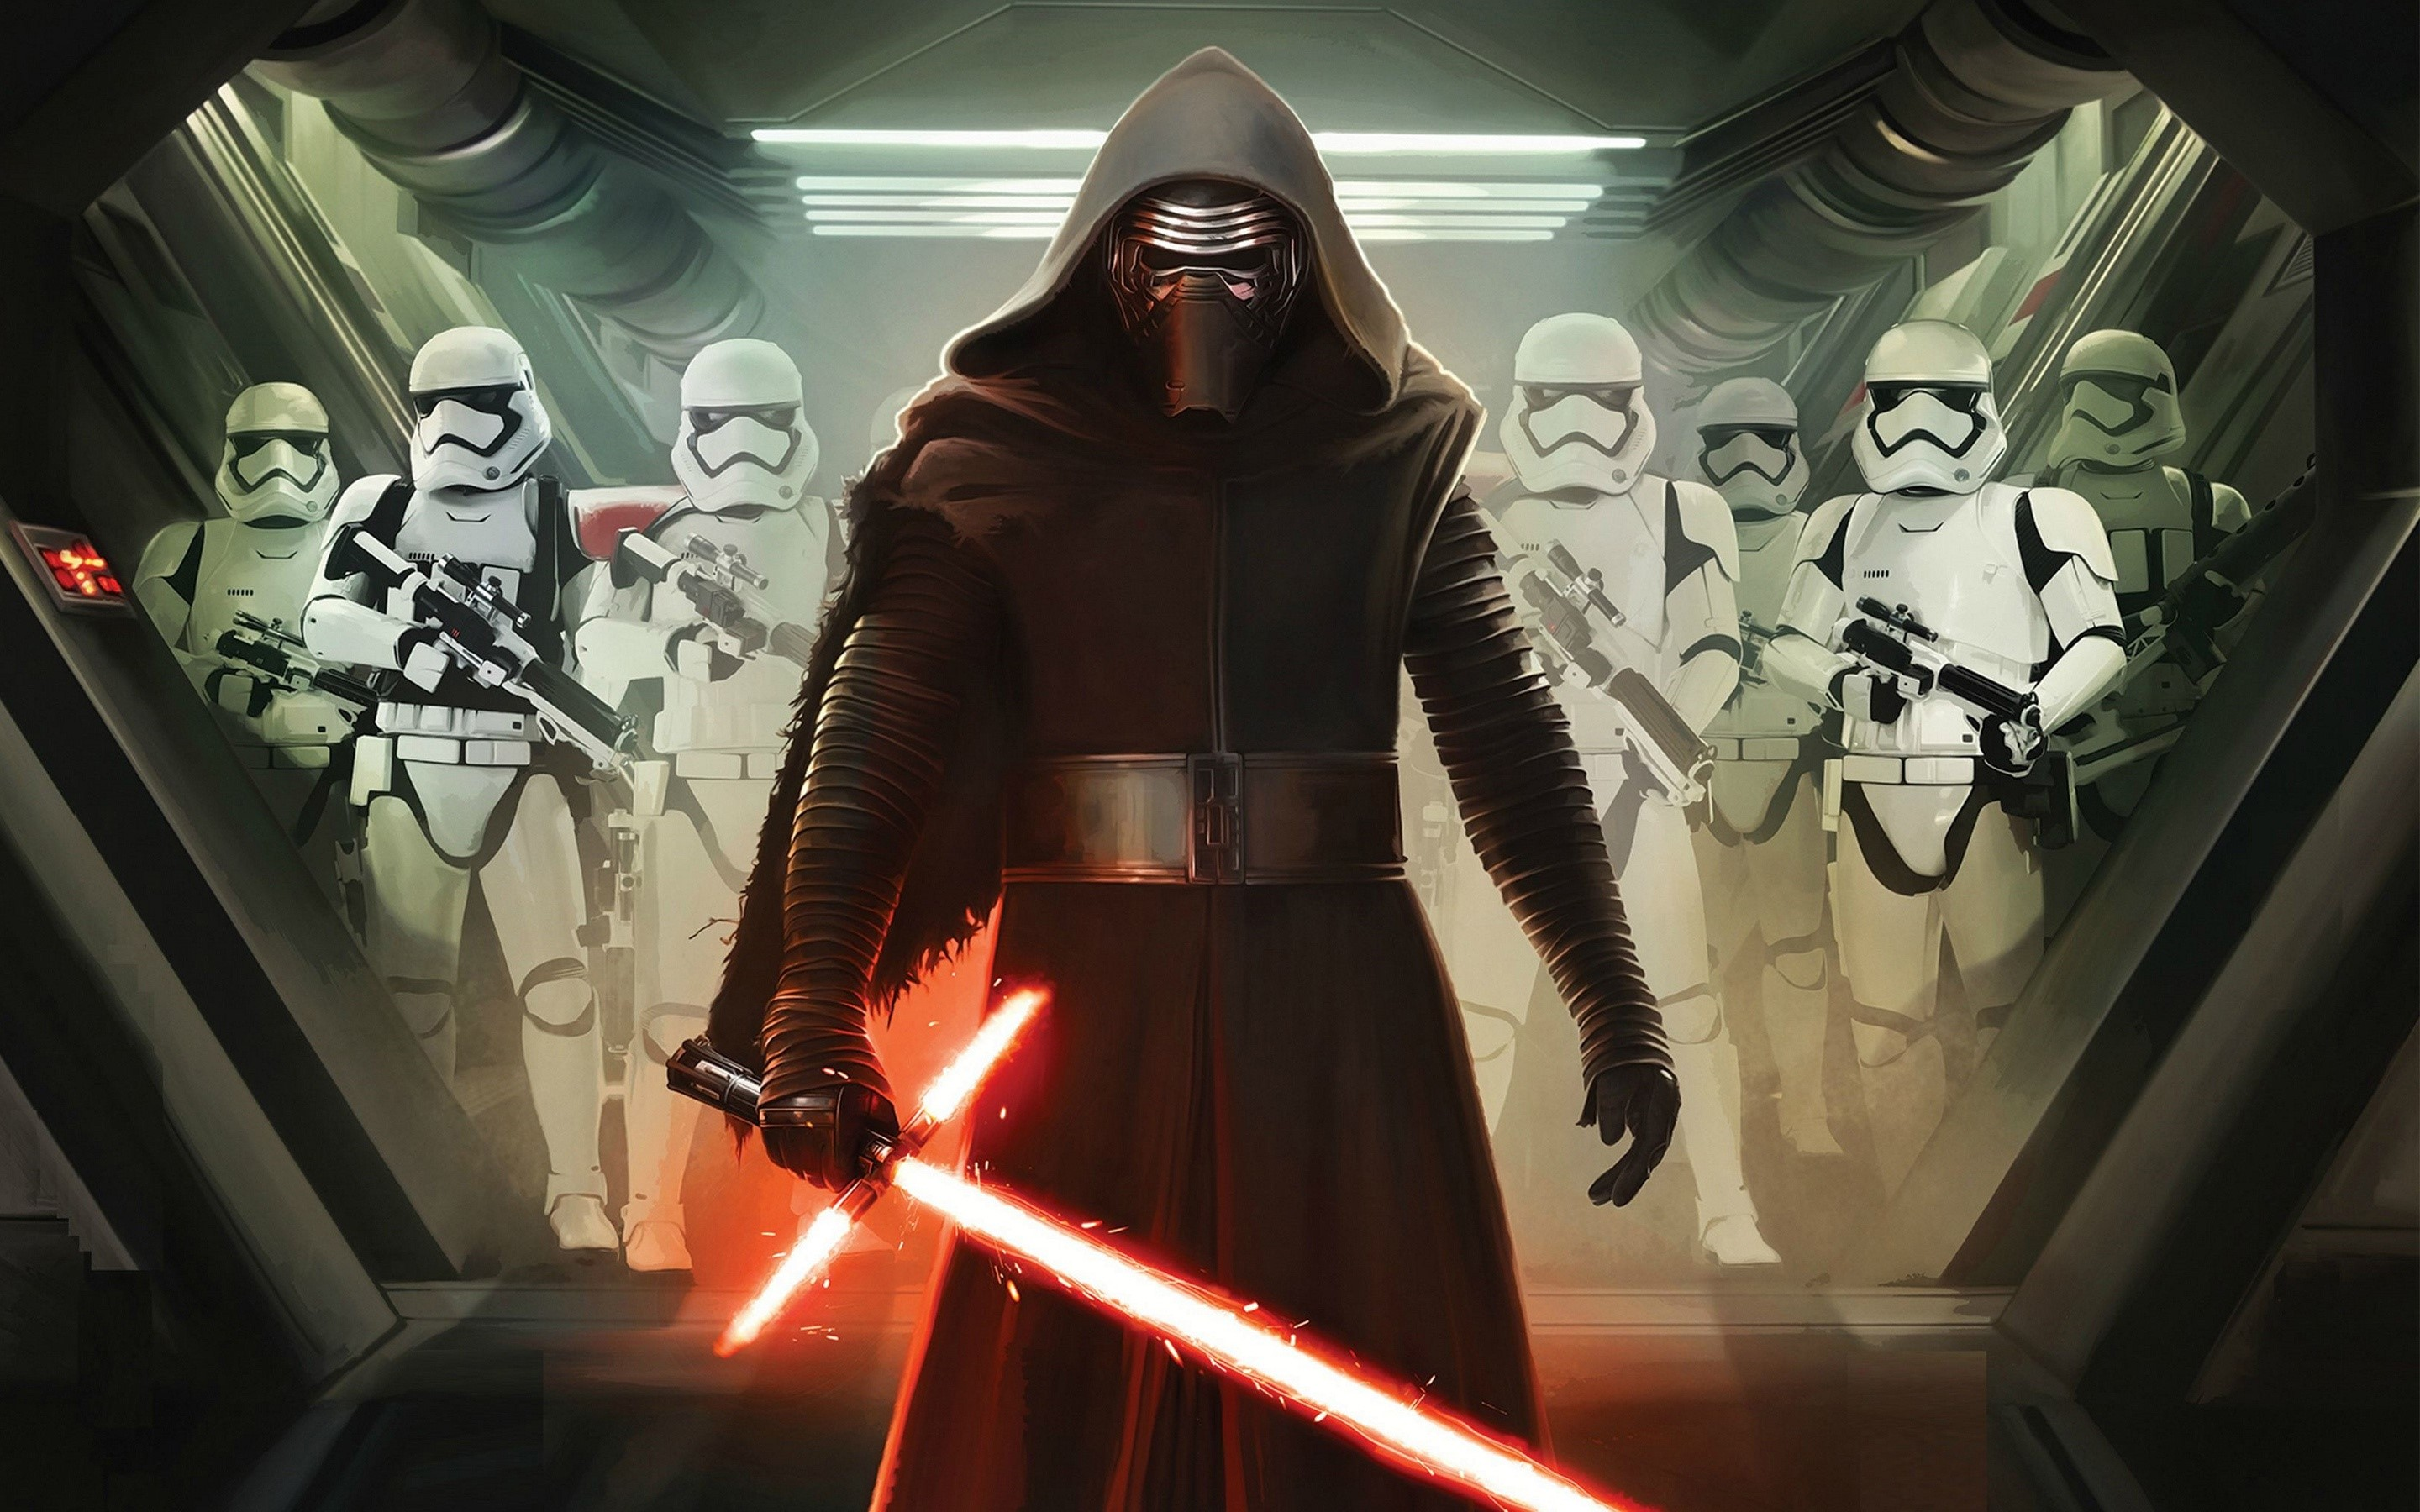 Wallpaper Kylo ren and the imperial soldiers